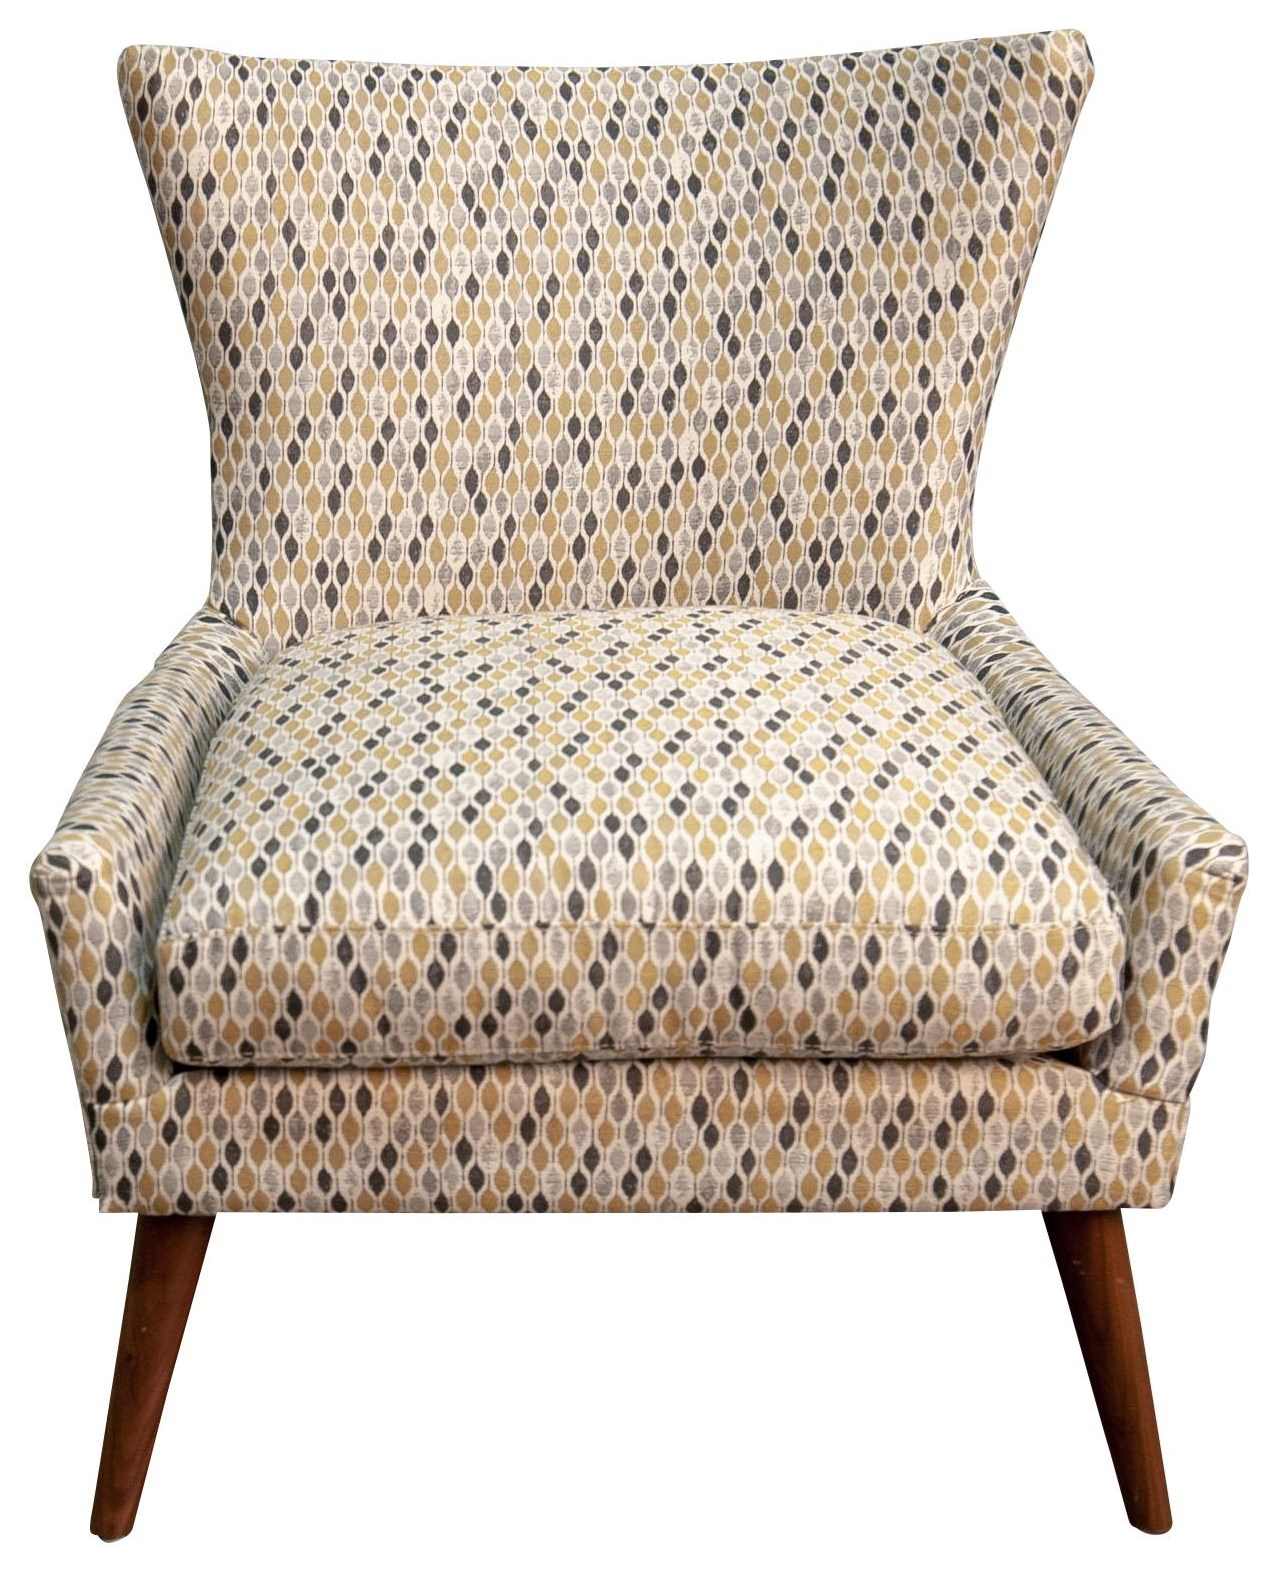 Mila Mila Accent Chair by Jonathan Louis at Morris Home